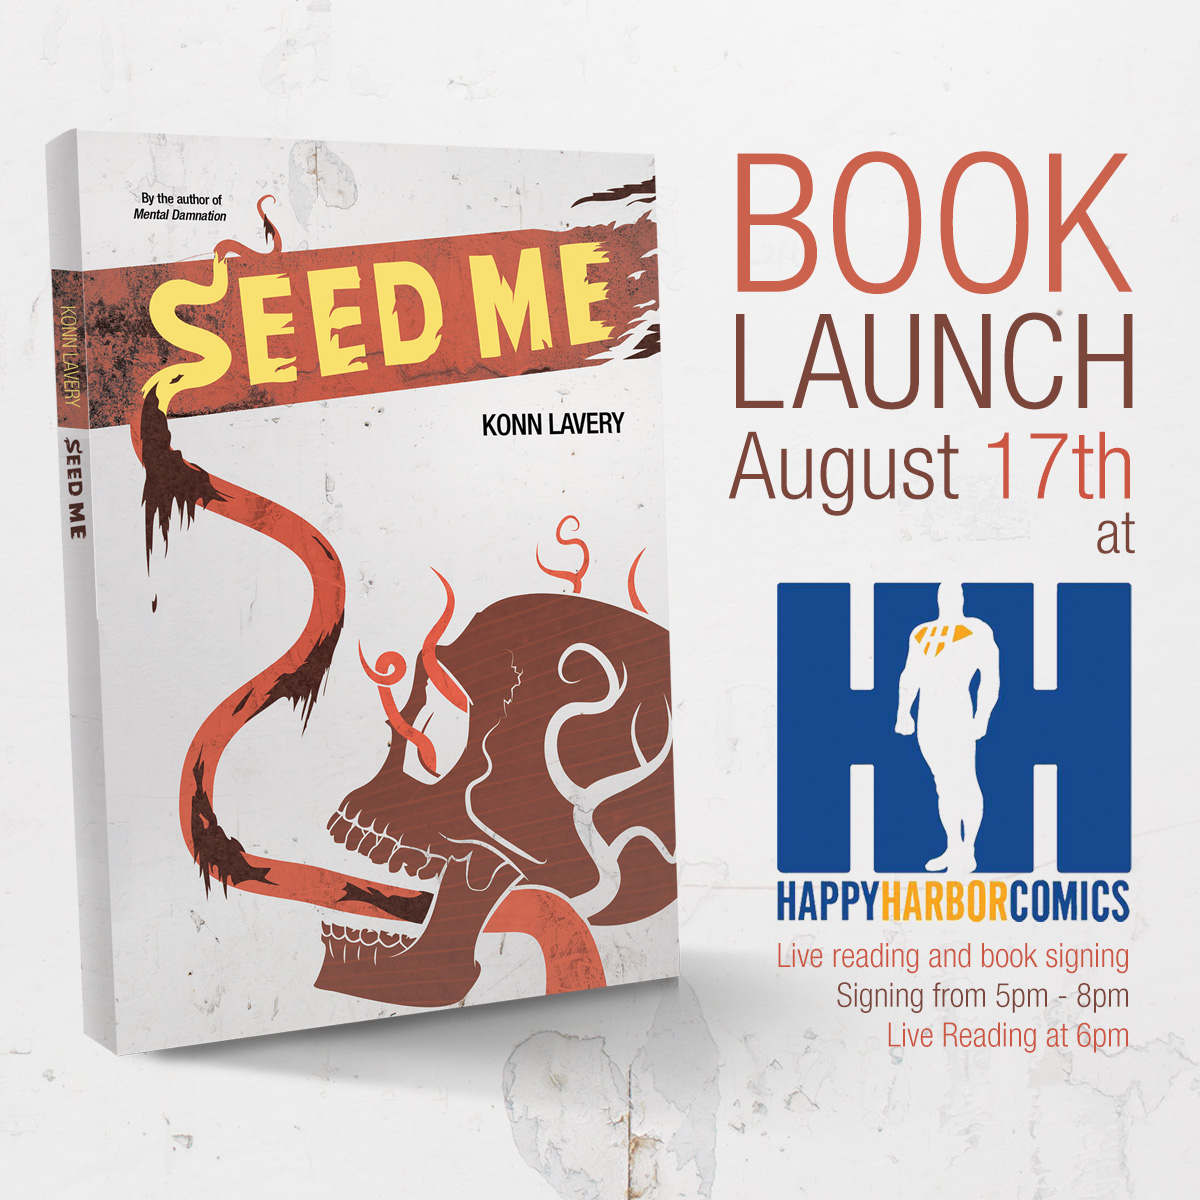 Seed Me Book Launch and Live Reading at Happy Harbor Comics